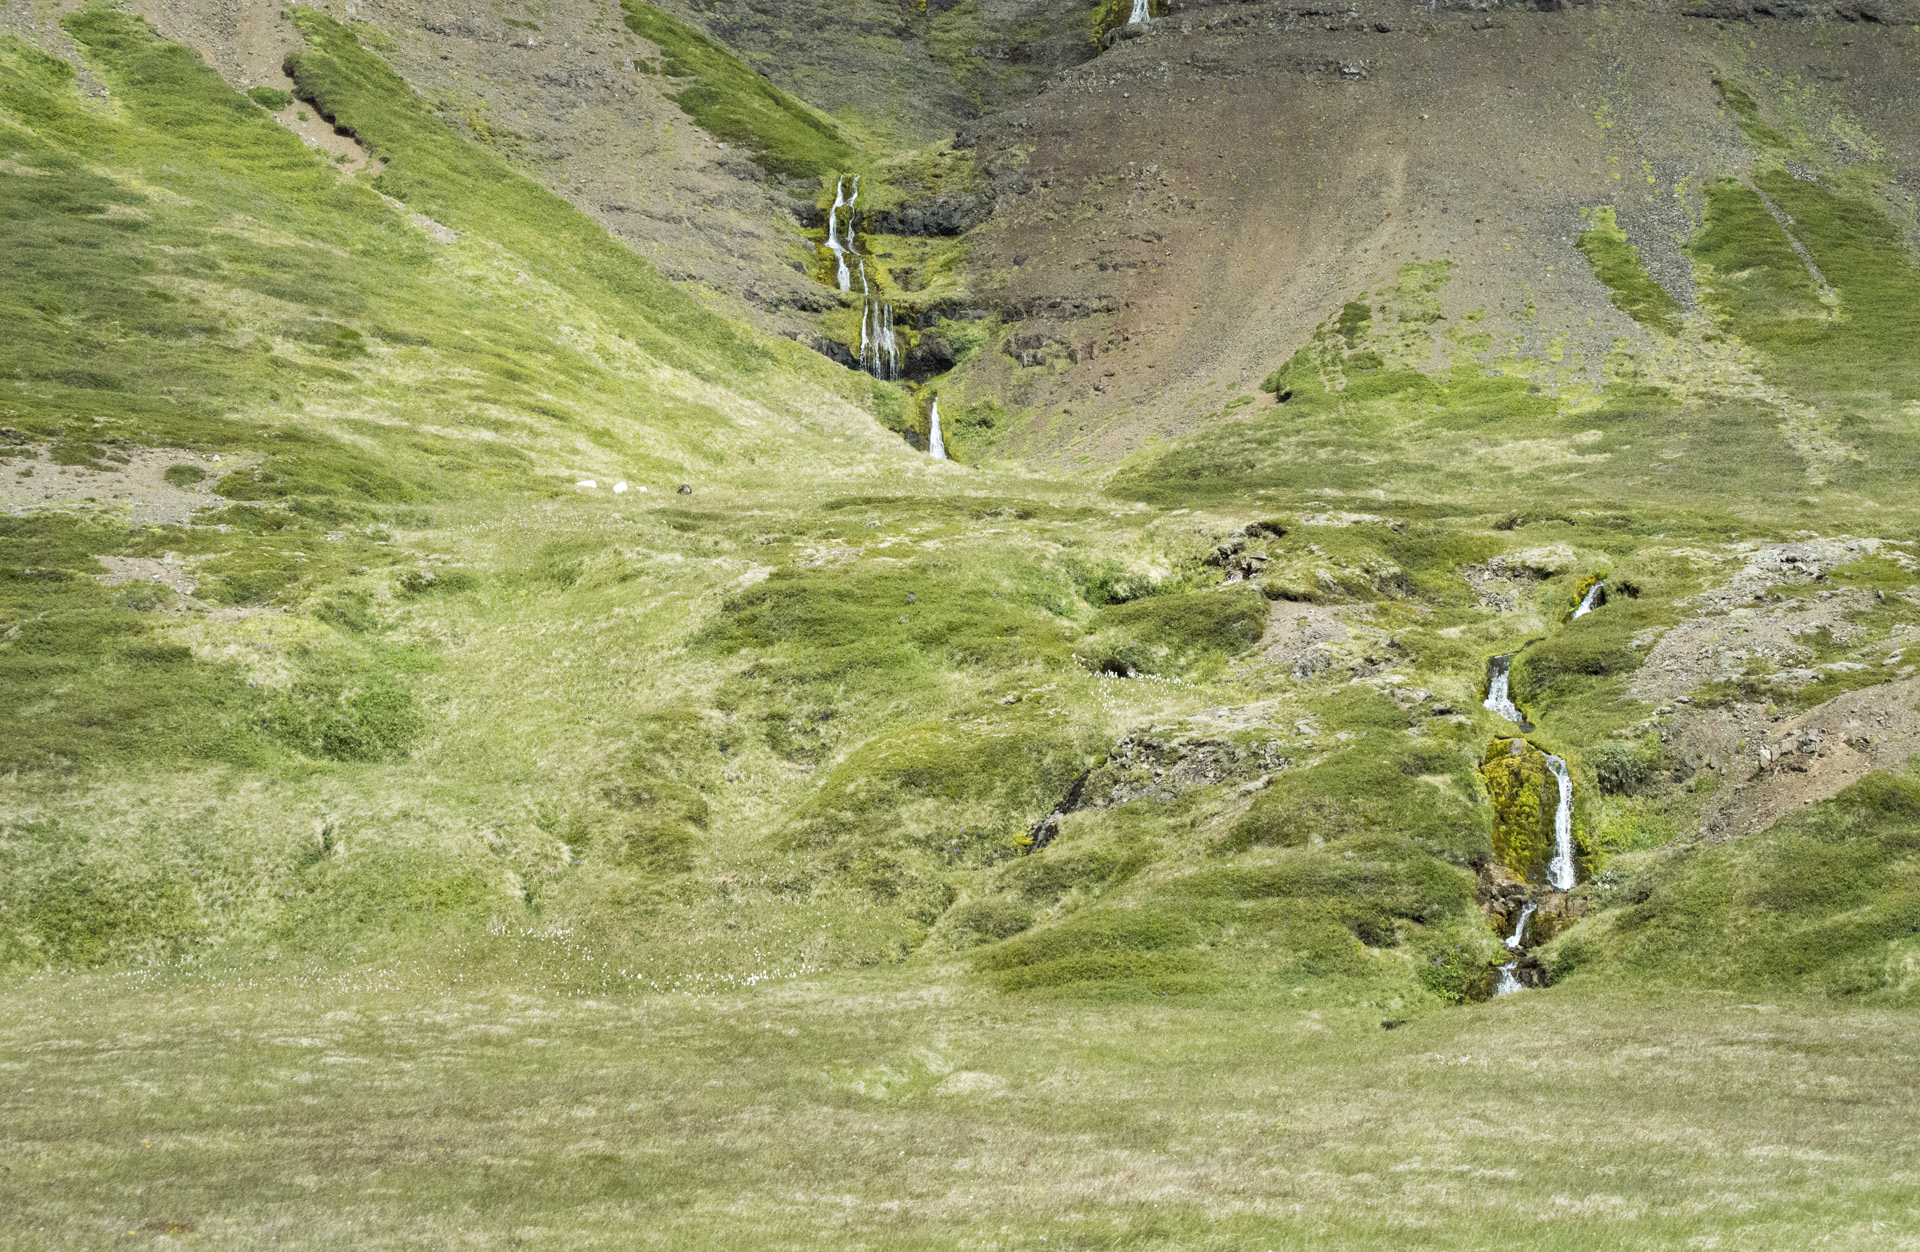 Small waterfall at the base of Seljafell mountain, Vesturland region, Iceland.